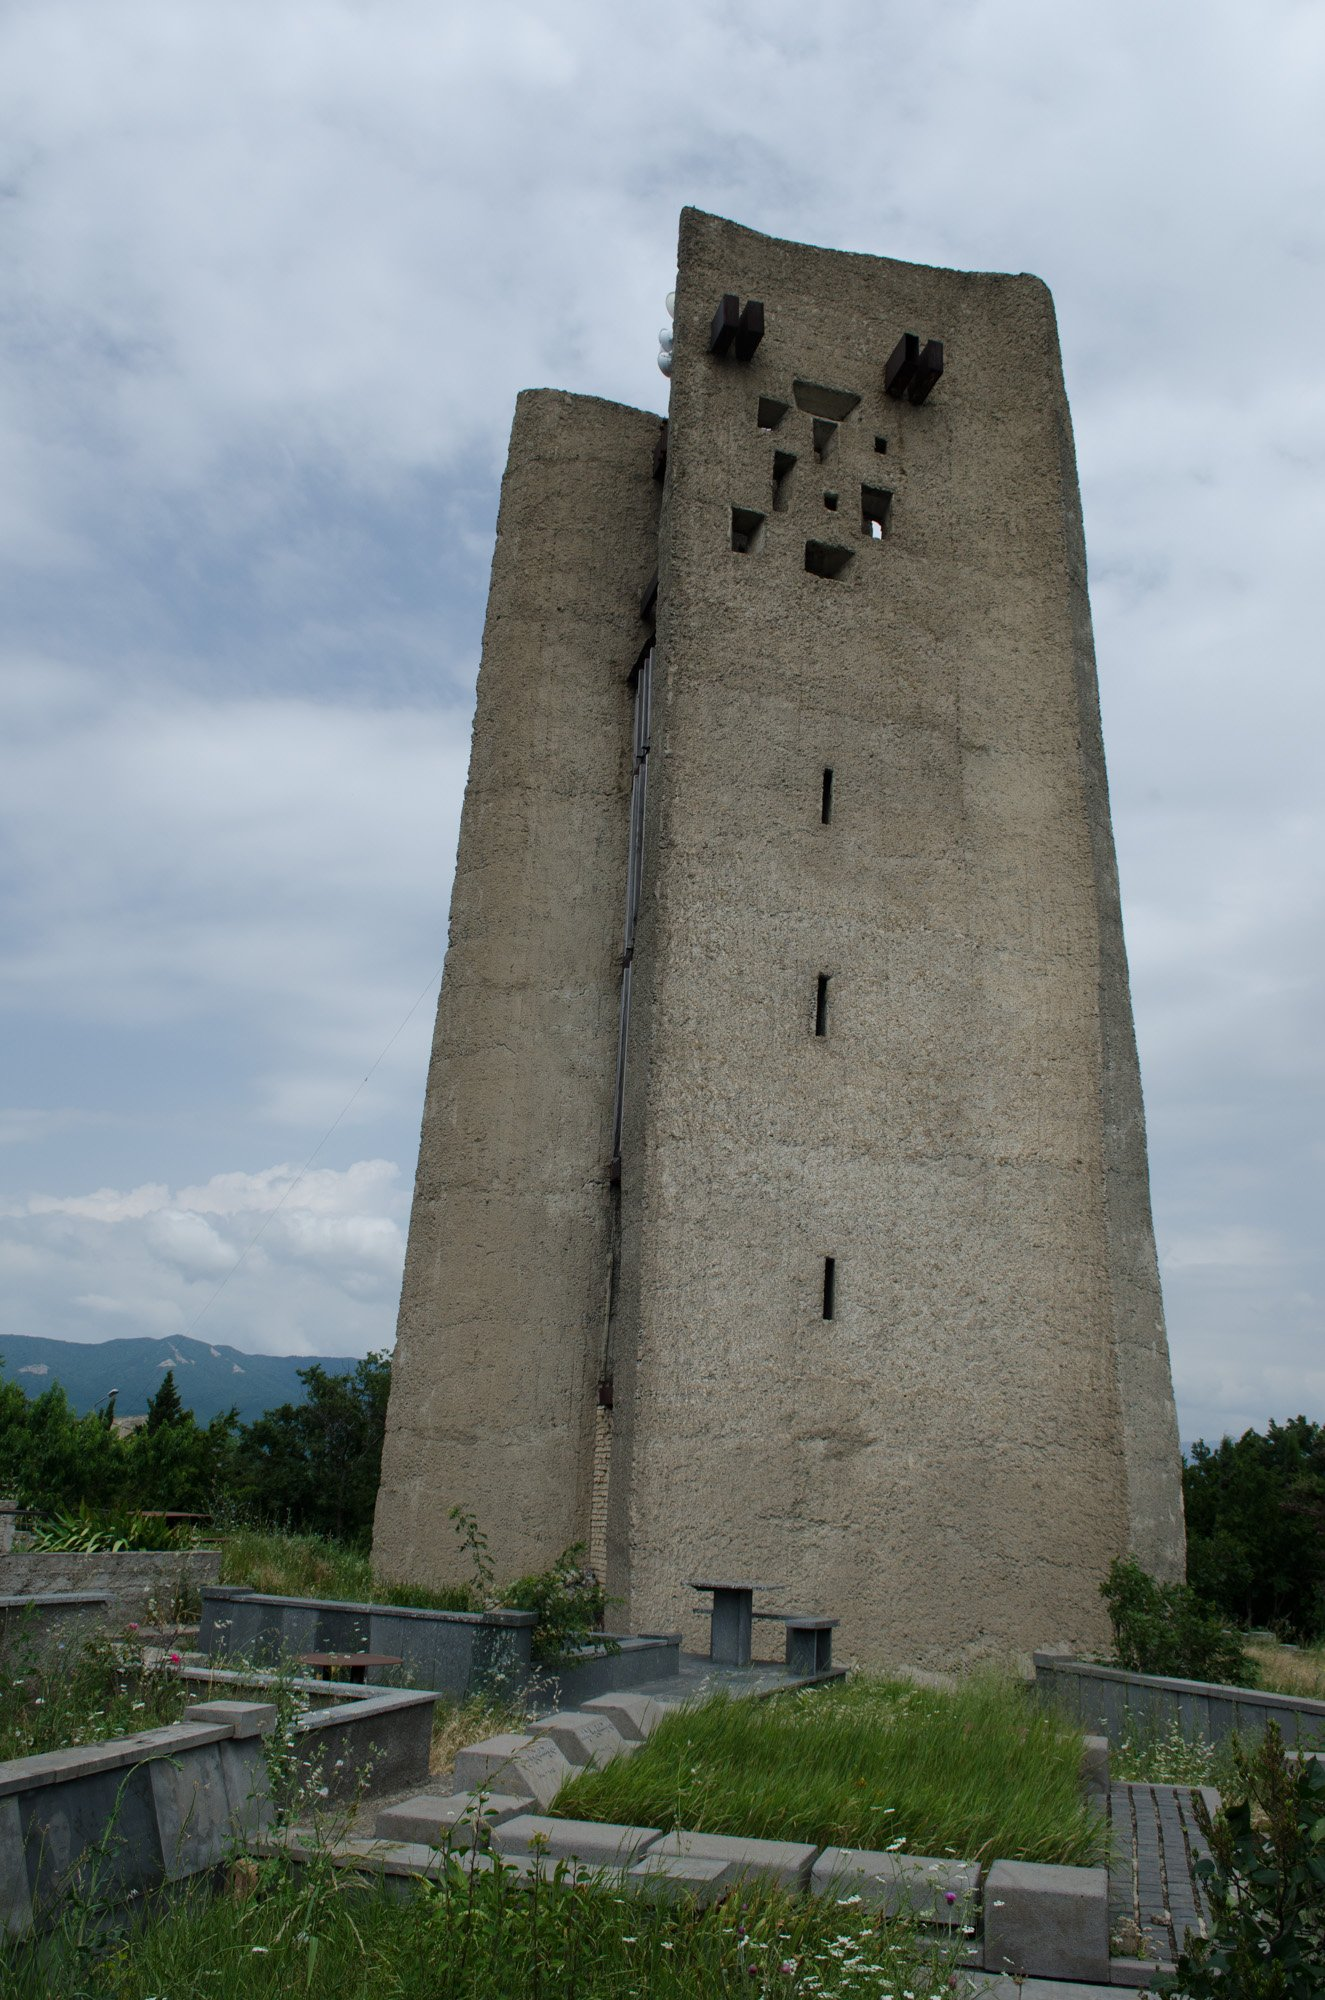 The water tower at Mukhatgverdi has echoes of Erno Goldfinger's Balfron Tower. Image: Vladimer Shioshvili